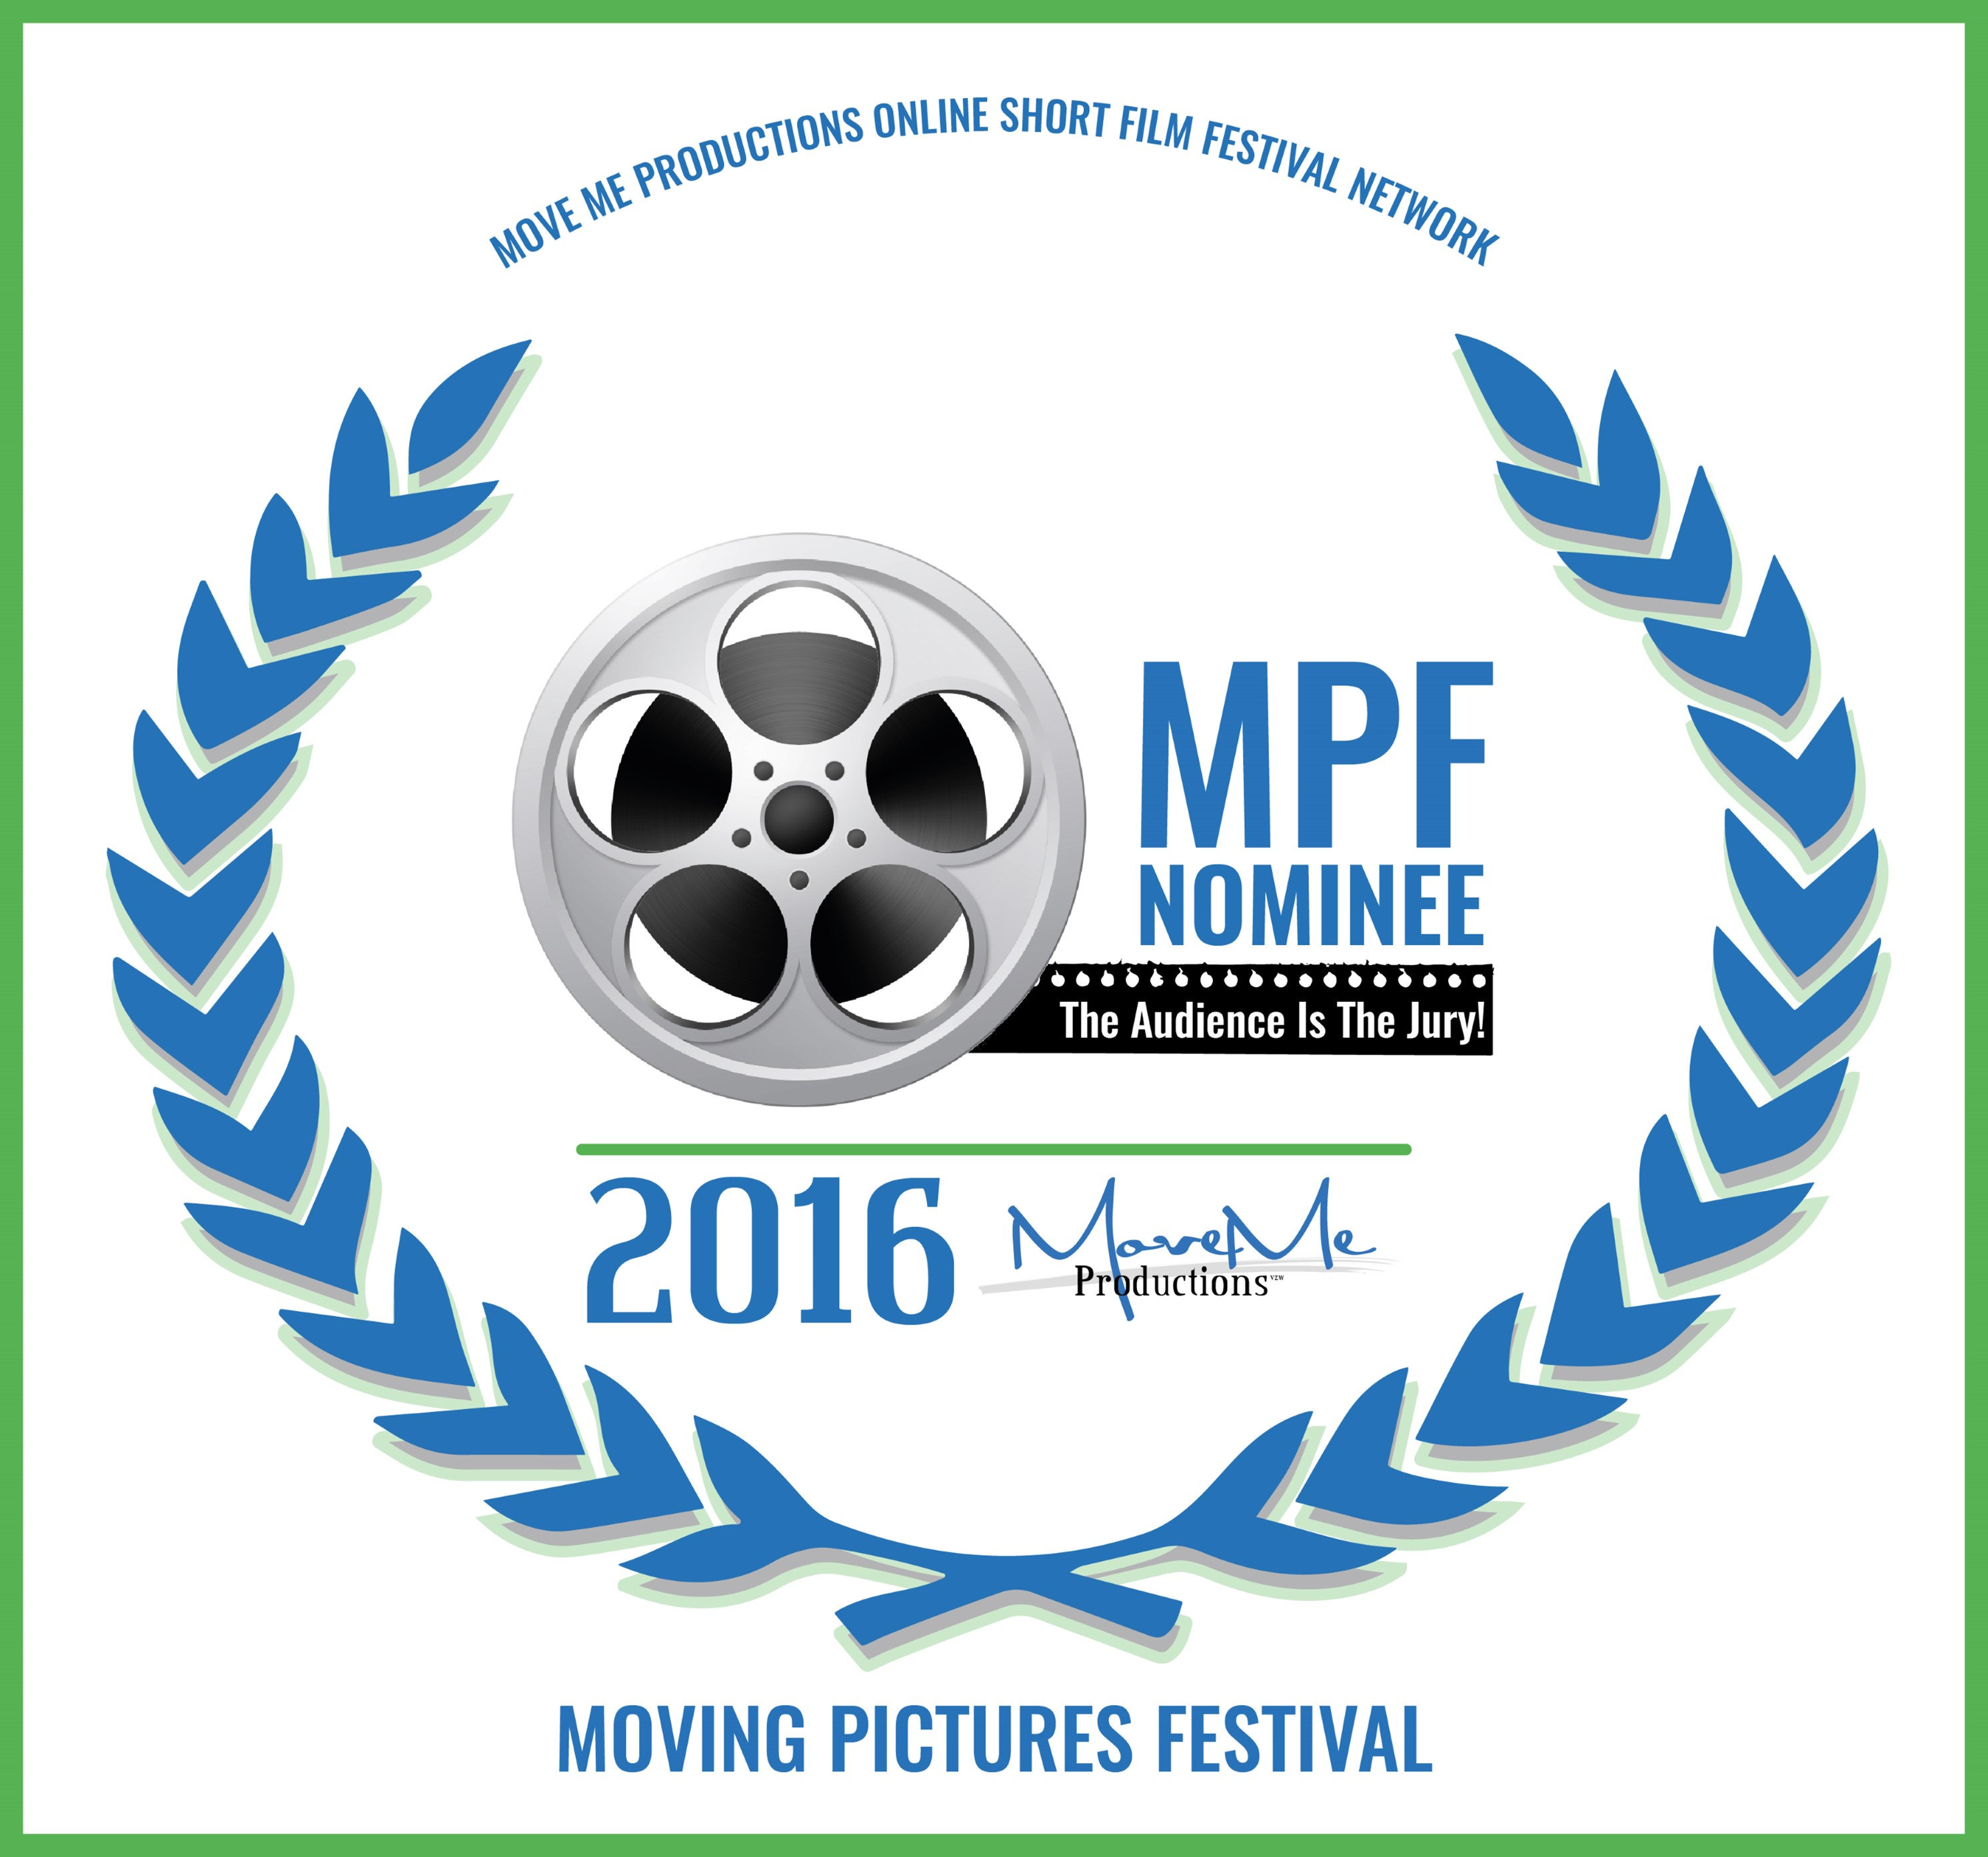 MPF laurel nominee 2016